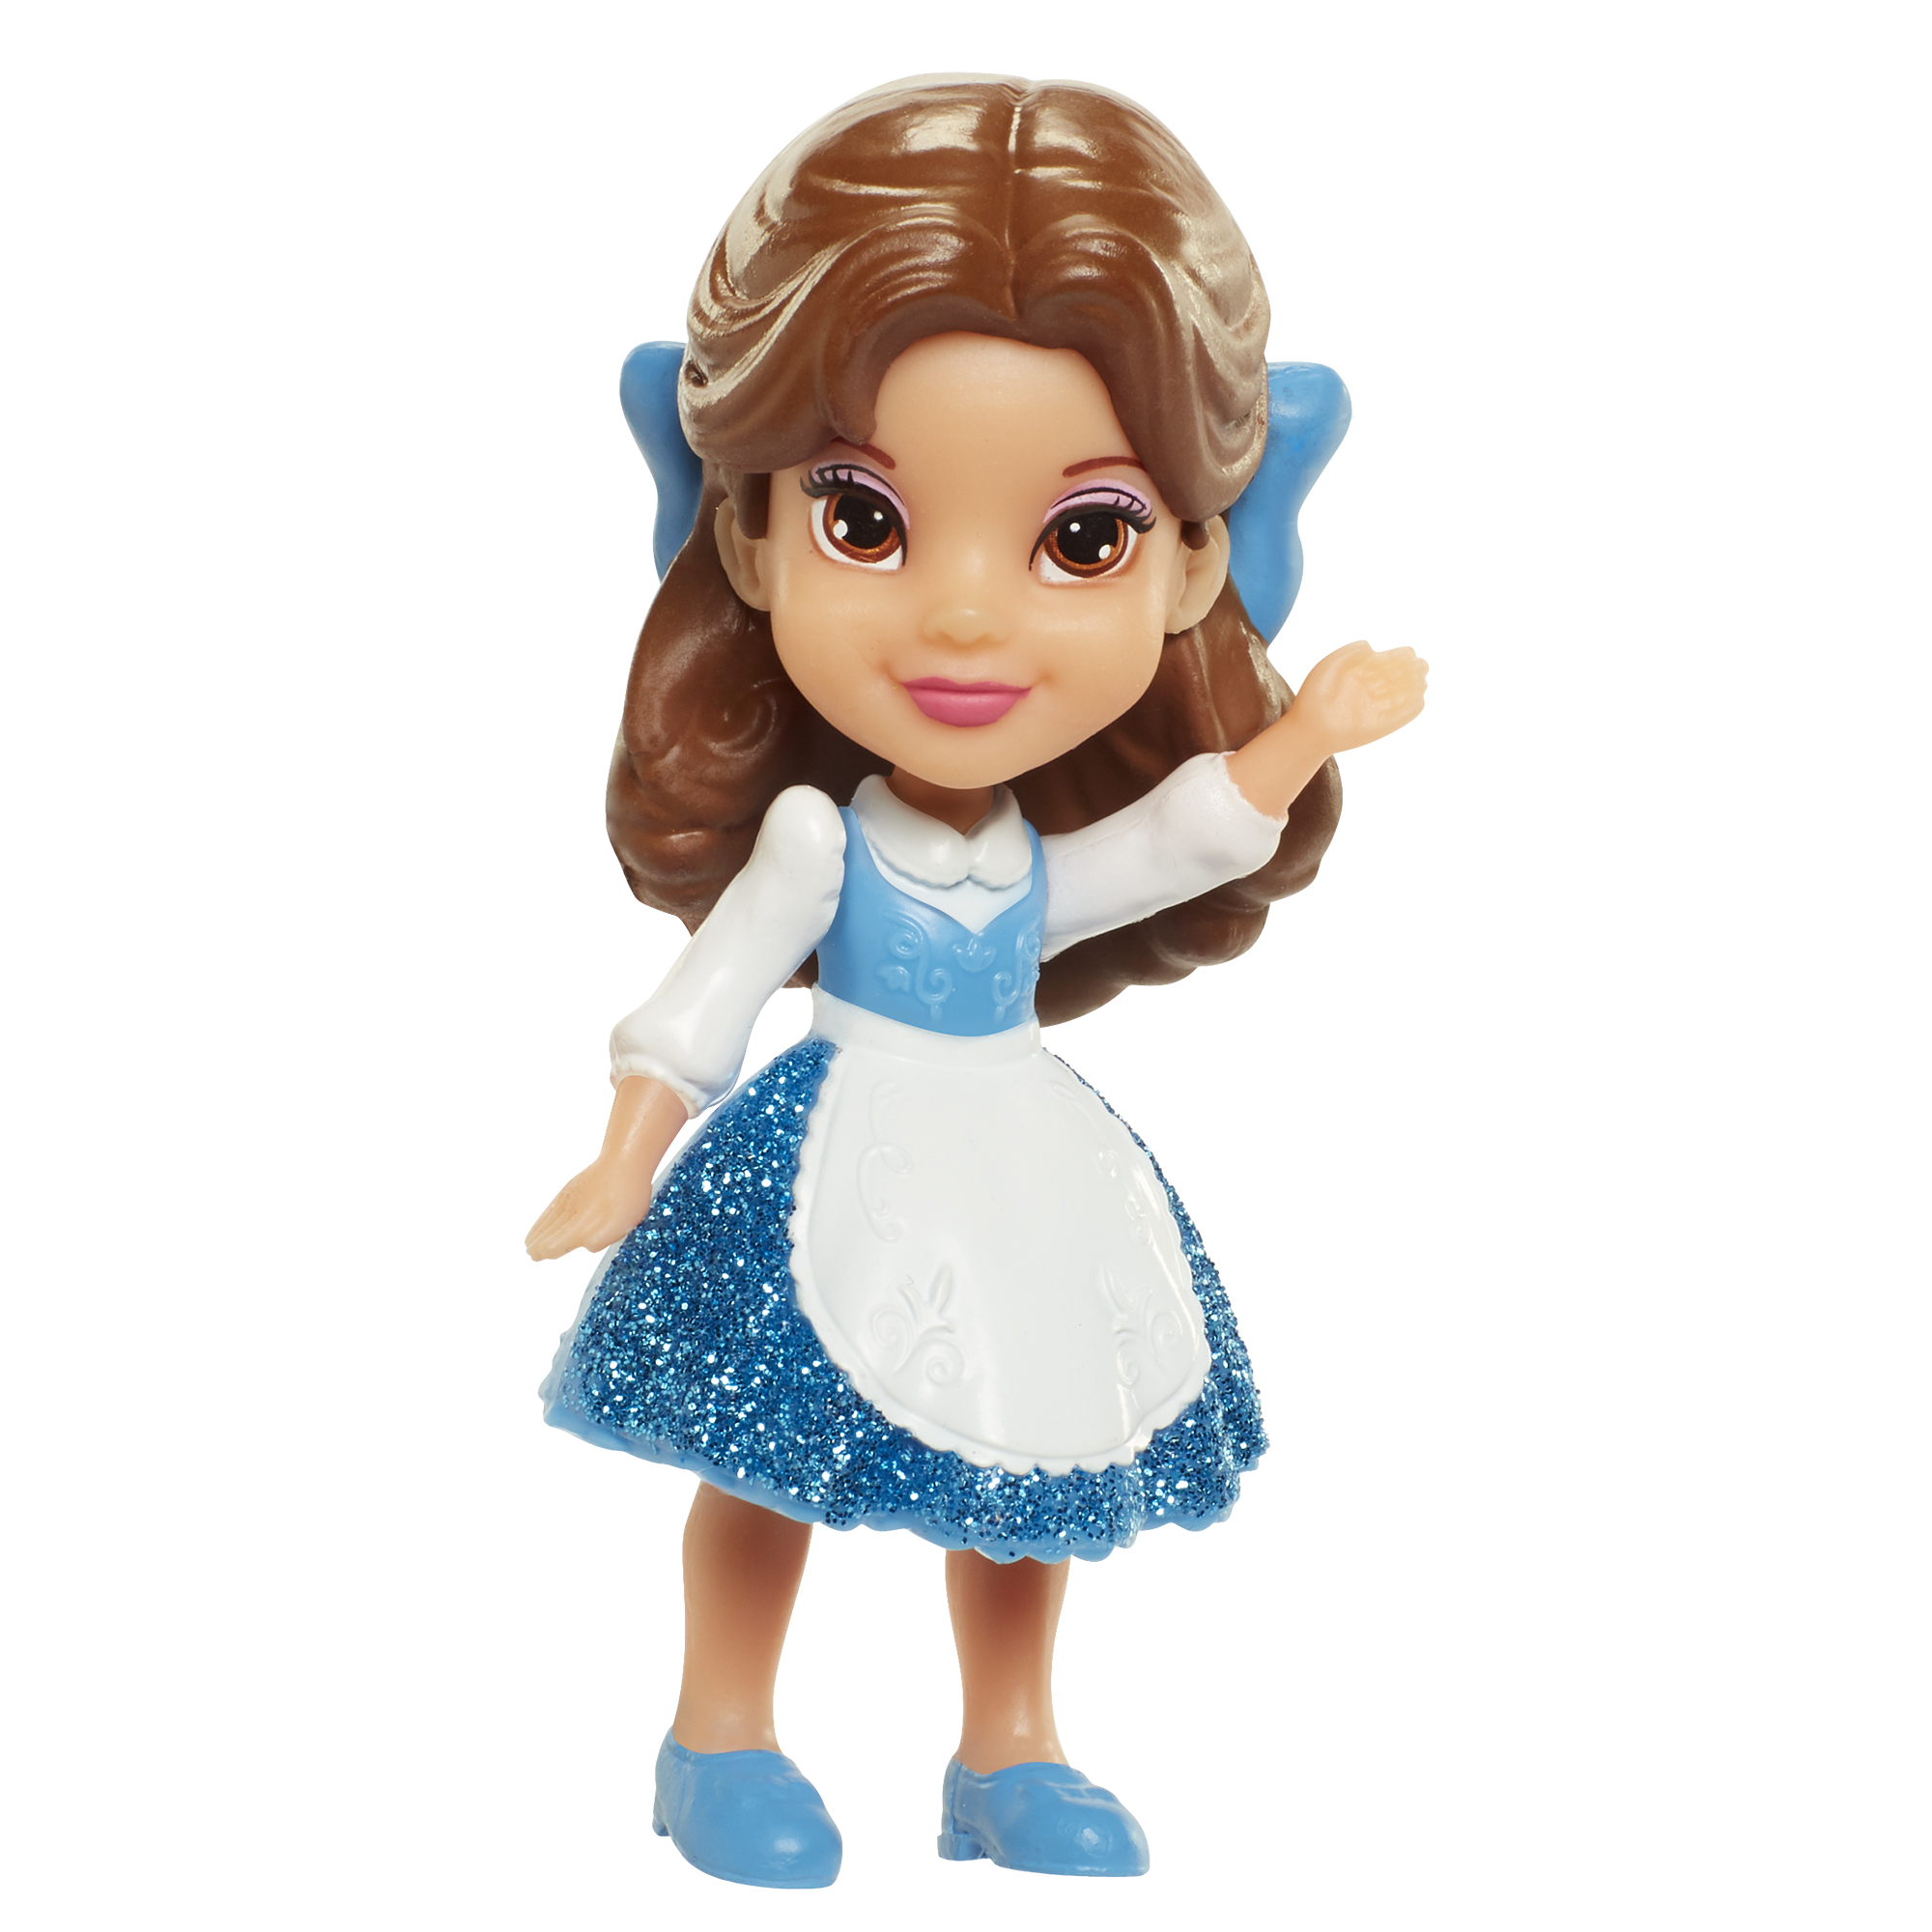 Belle 3 inch Mini Doll (Blue Dress) Disney Princess